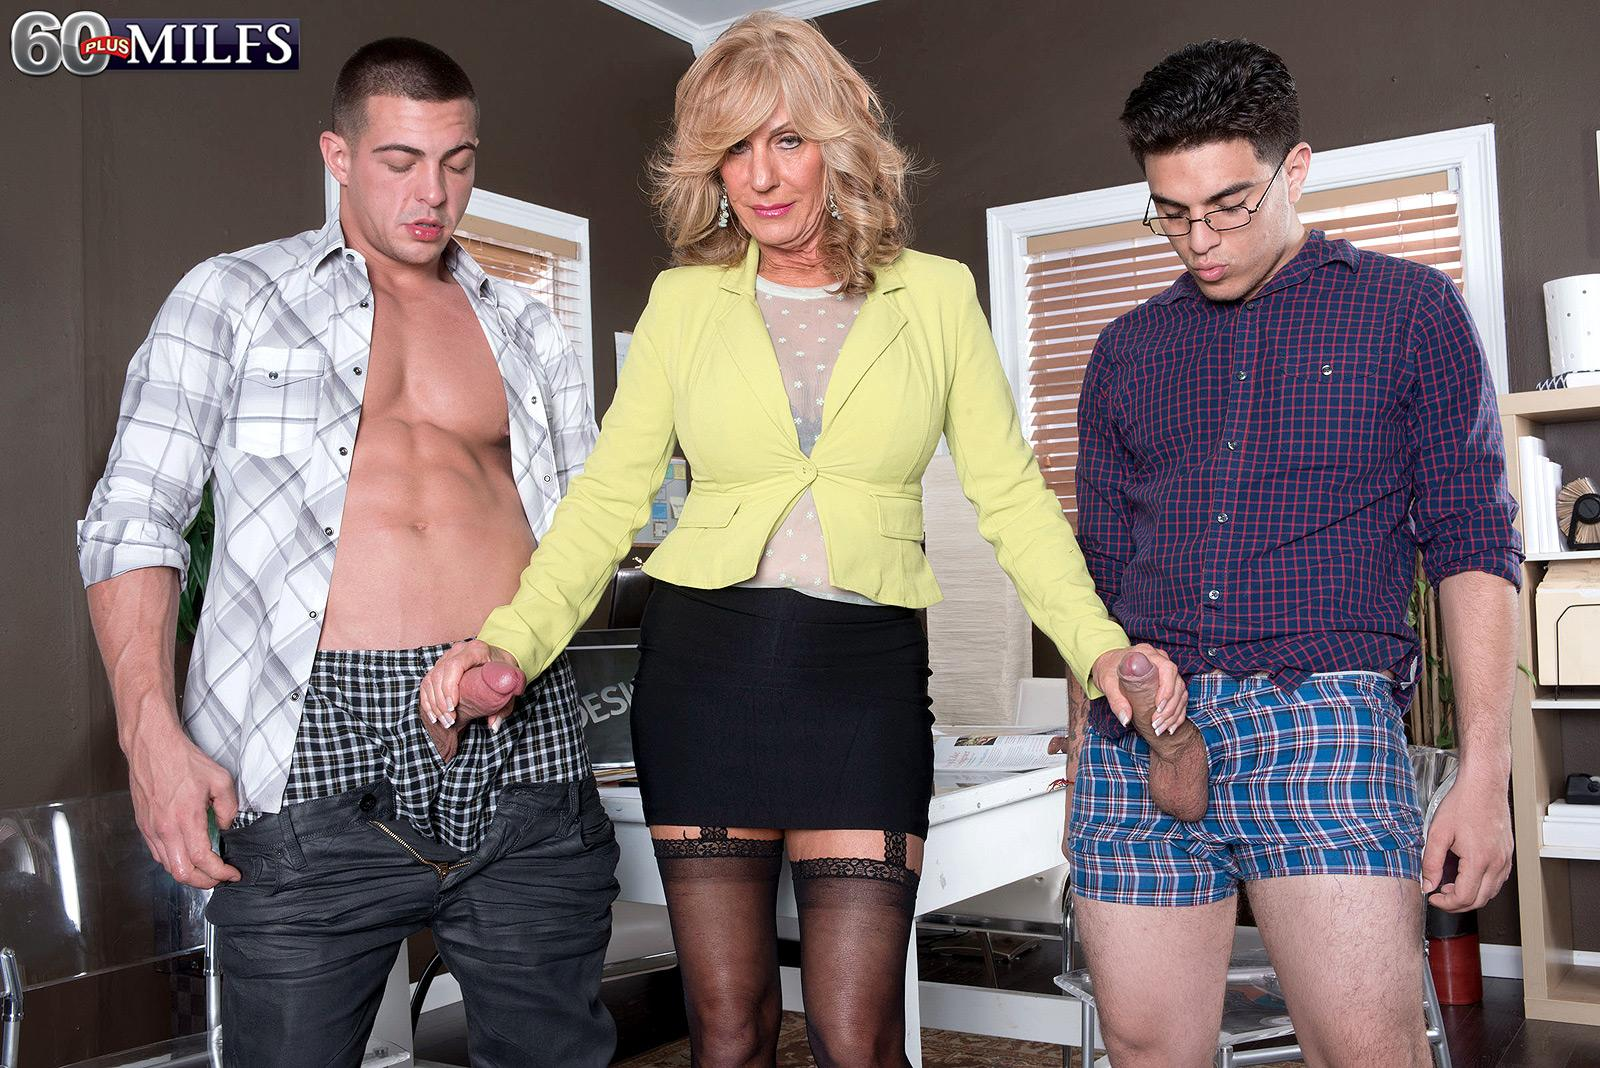 Over 60 light-haired MILF Phoenix Skye fellating gigantic rods in MMF three-way